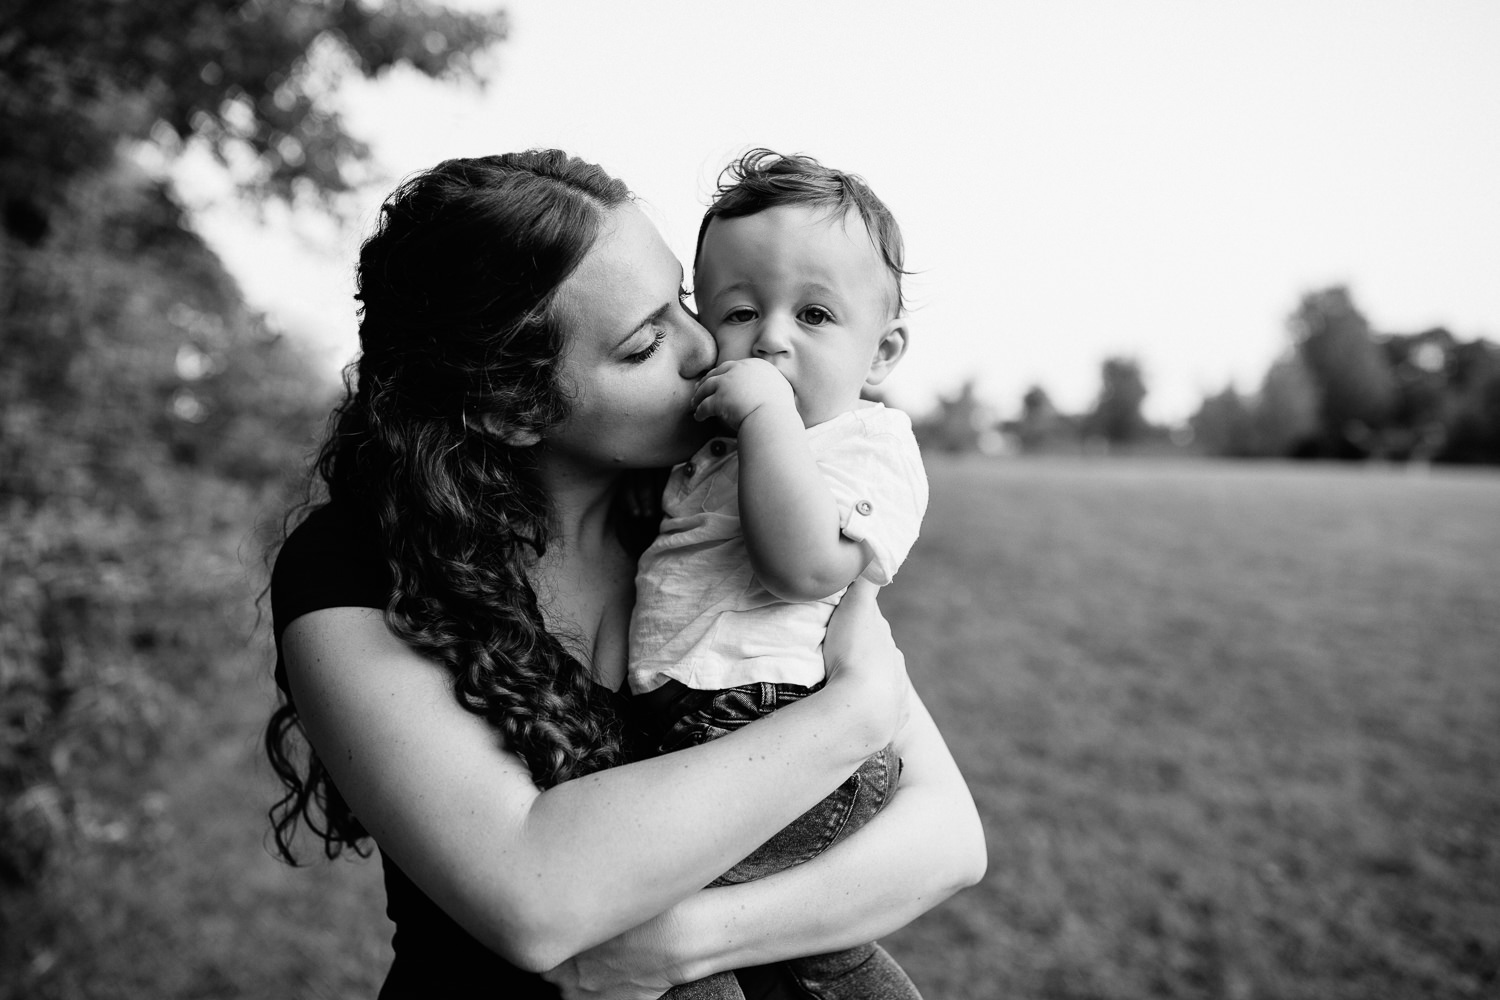 mom standing holding 9 month old baby boy with dark hair wearing white t-shirt and jeans, kissing son on cheek, boy looking at camera - GTA Lifestyle Photography